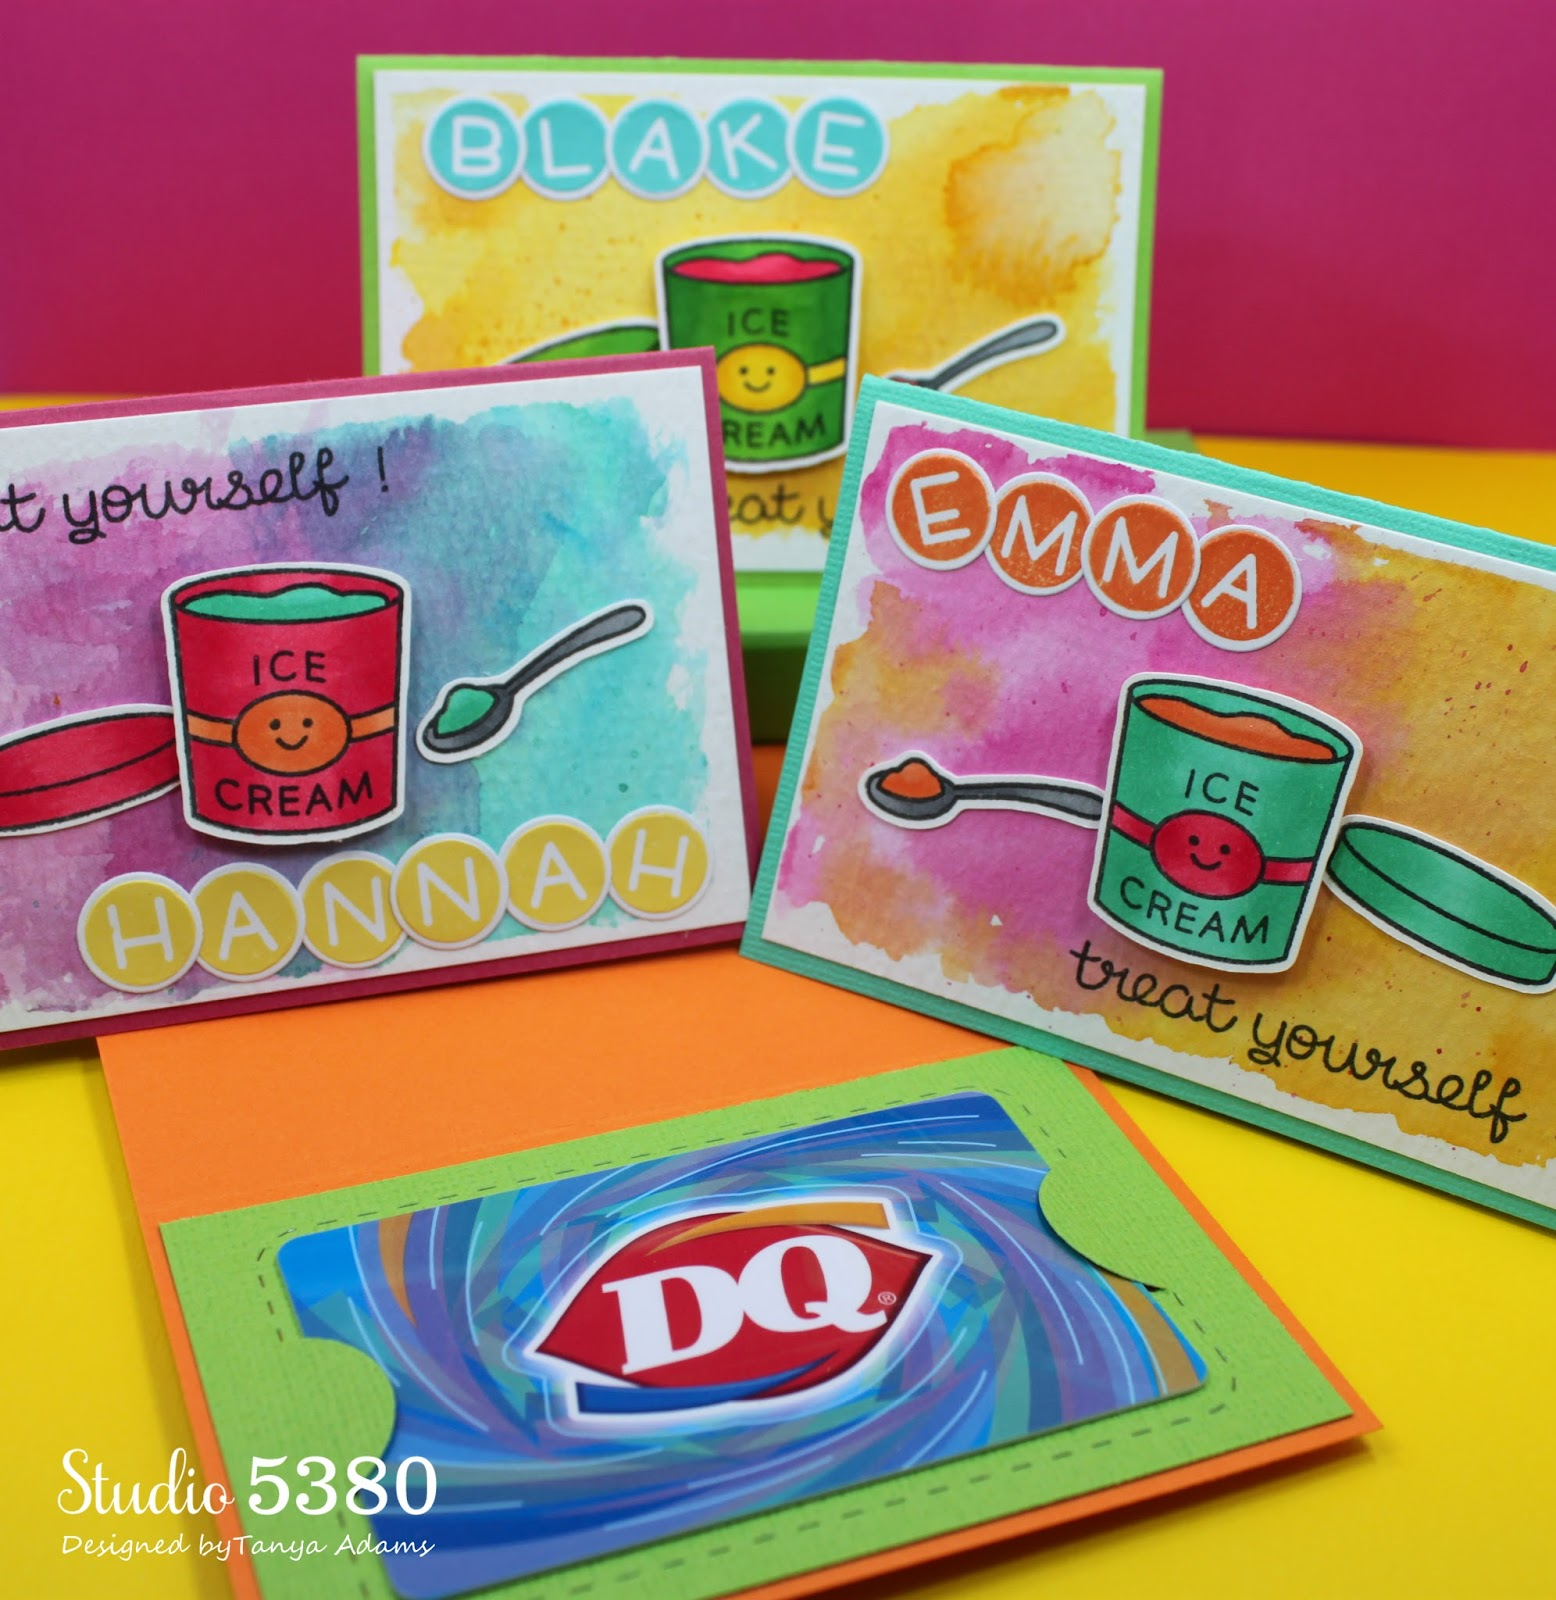 Studio 5380 treat yourself i used the gift card die from jaded blossom on an insert to hold a gift card to the dairy queen solutioingenieria Image collections